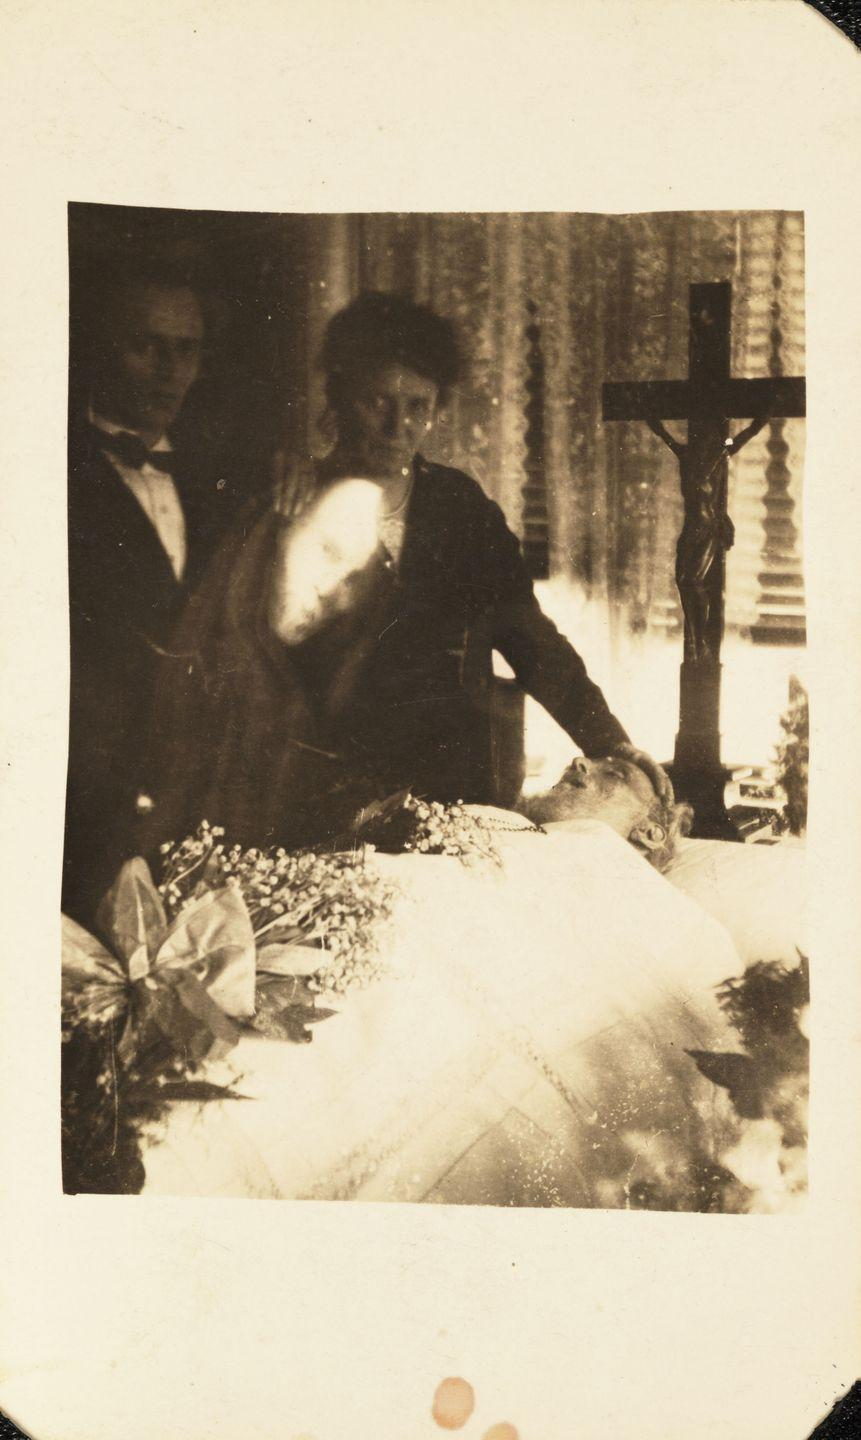 "<p>A woman stands with her hand on the forehead of a deceased loved one, while a ghostly face watches over. According to BBC<em>, </em><a href=""https://www.bbc.com/future/article/20150629-the-intriguing-history-of-ghost-photography"" rel=""nofollow noopener"" target=""_blank"" data-ylk=""slk:spirit photography was popularized during the mid-19th century"" class=""link rapid-noclick-resp"">spirit photography was popularized during the mid-19th century</a>, as cameras became readily available. The technique used multiple exposures to create the appearance of ghostly figures. </p>"